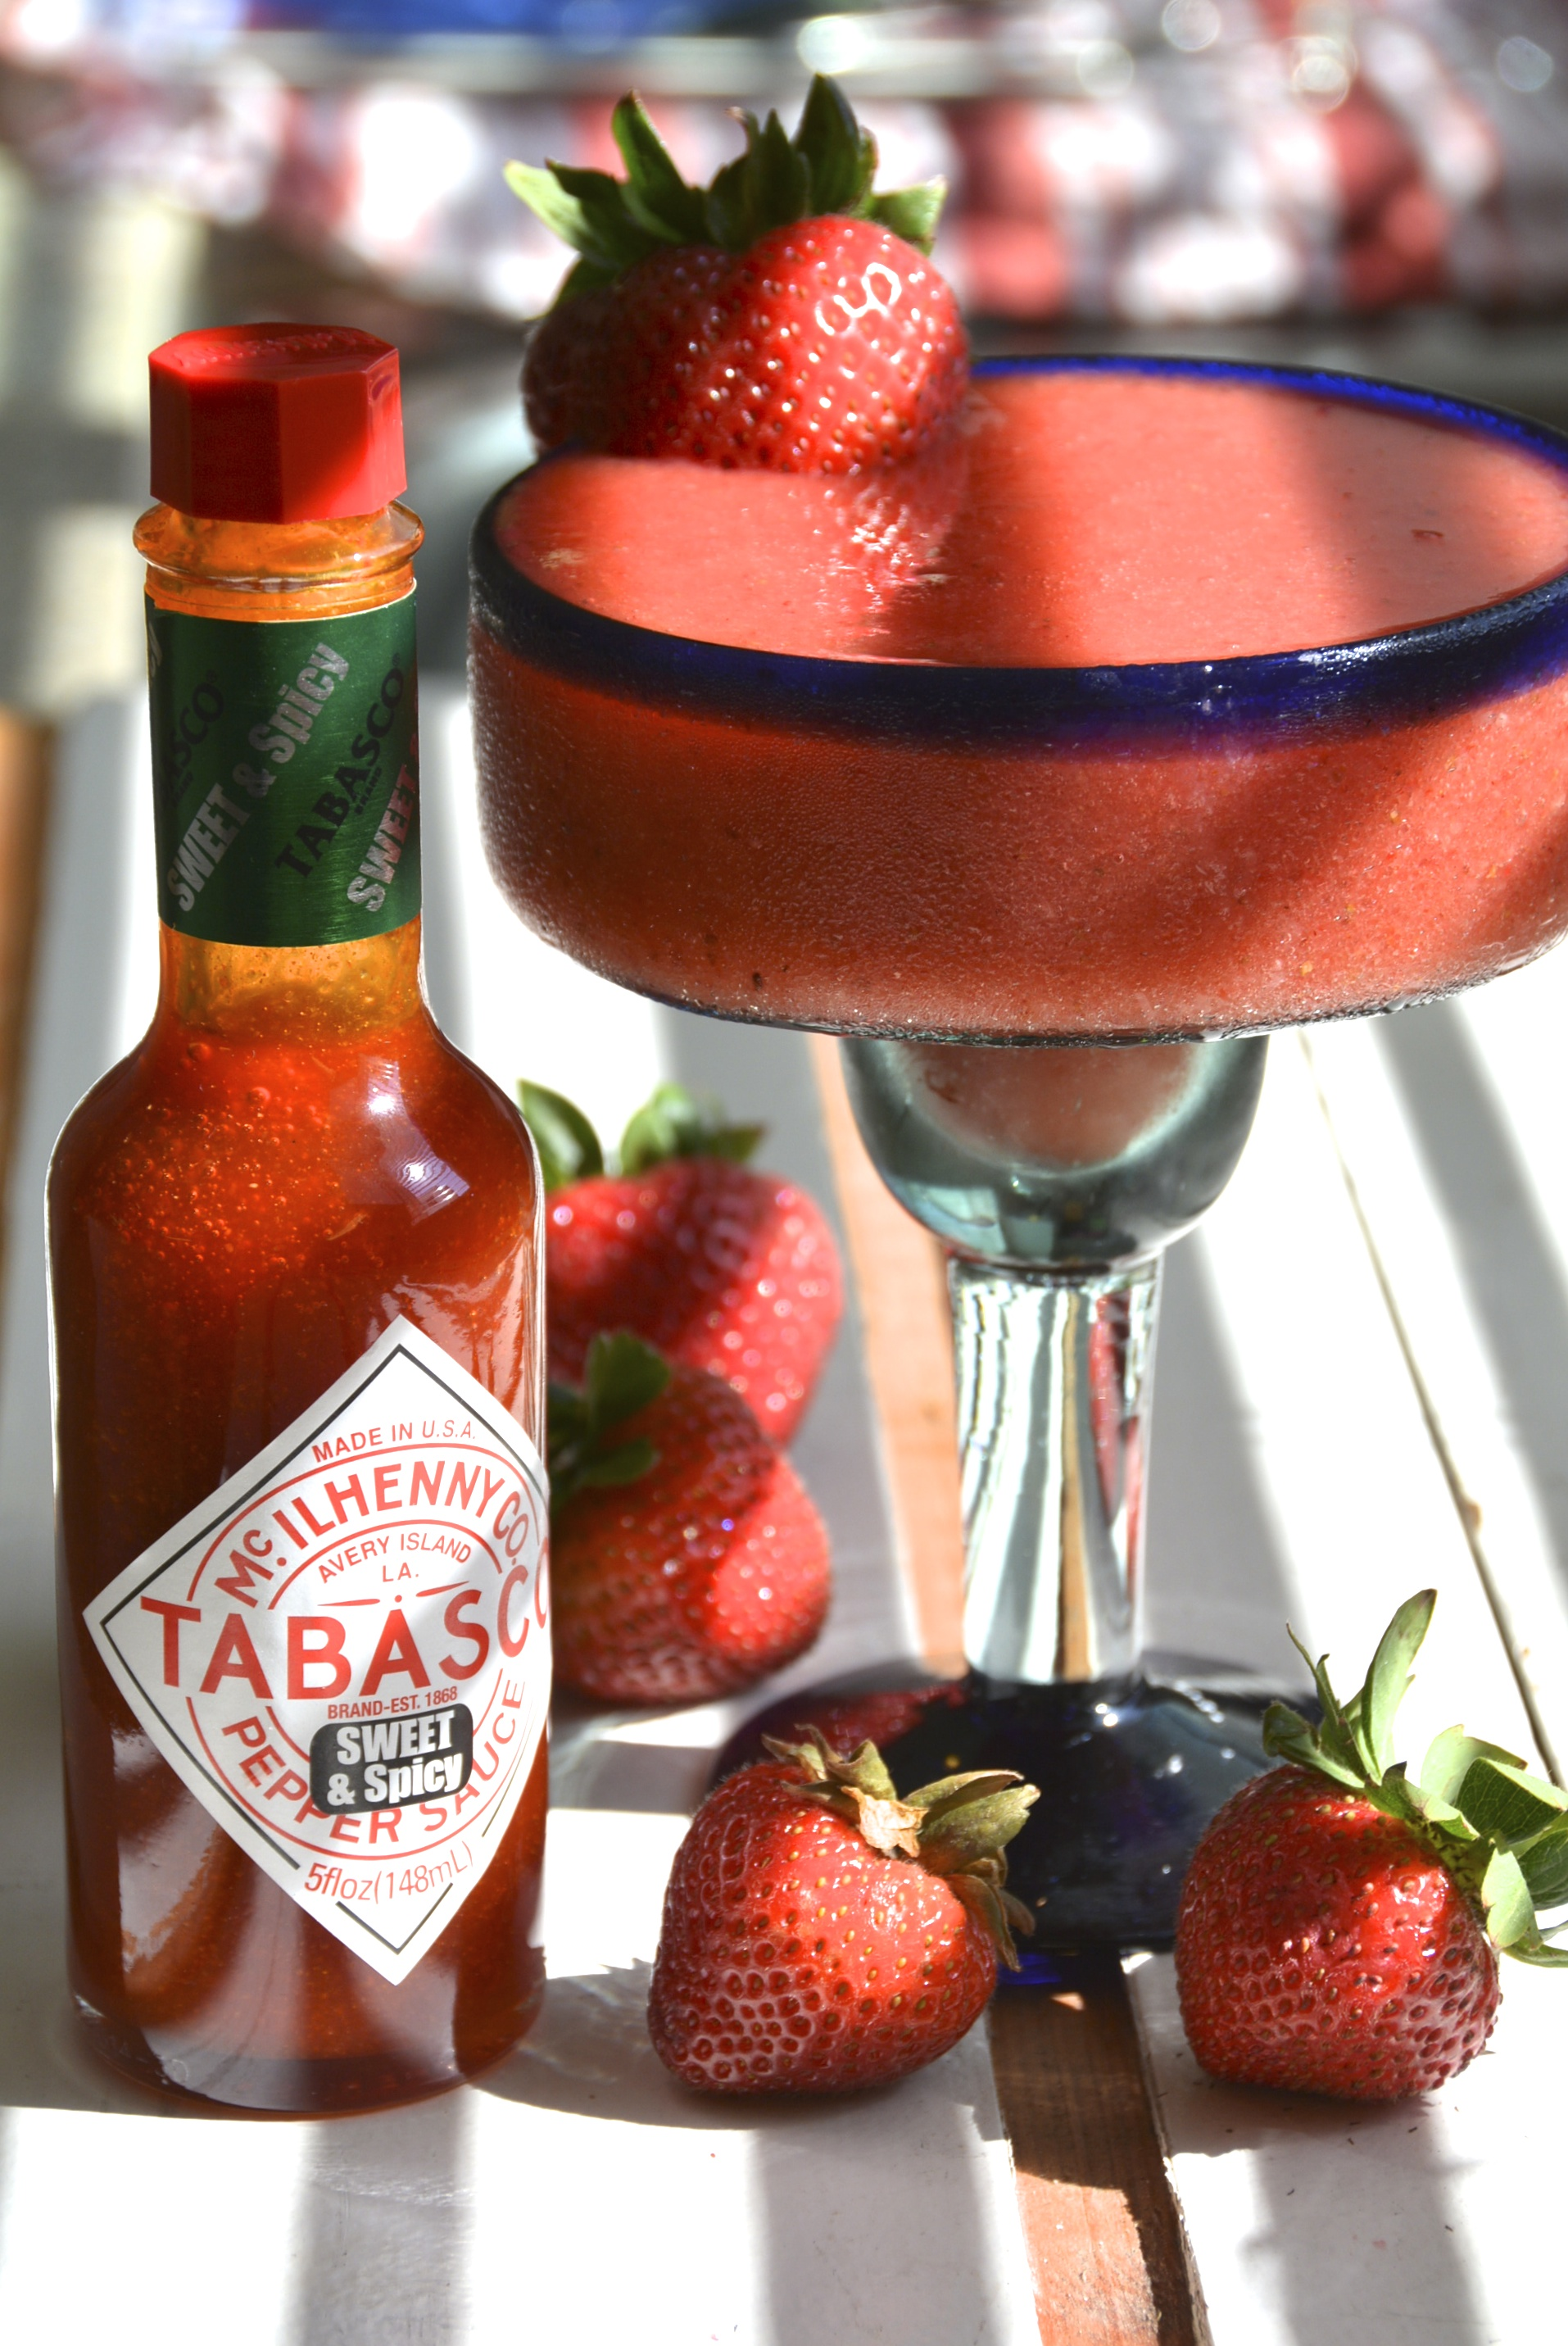 Tabasco Sweet & Spicy 1